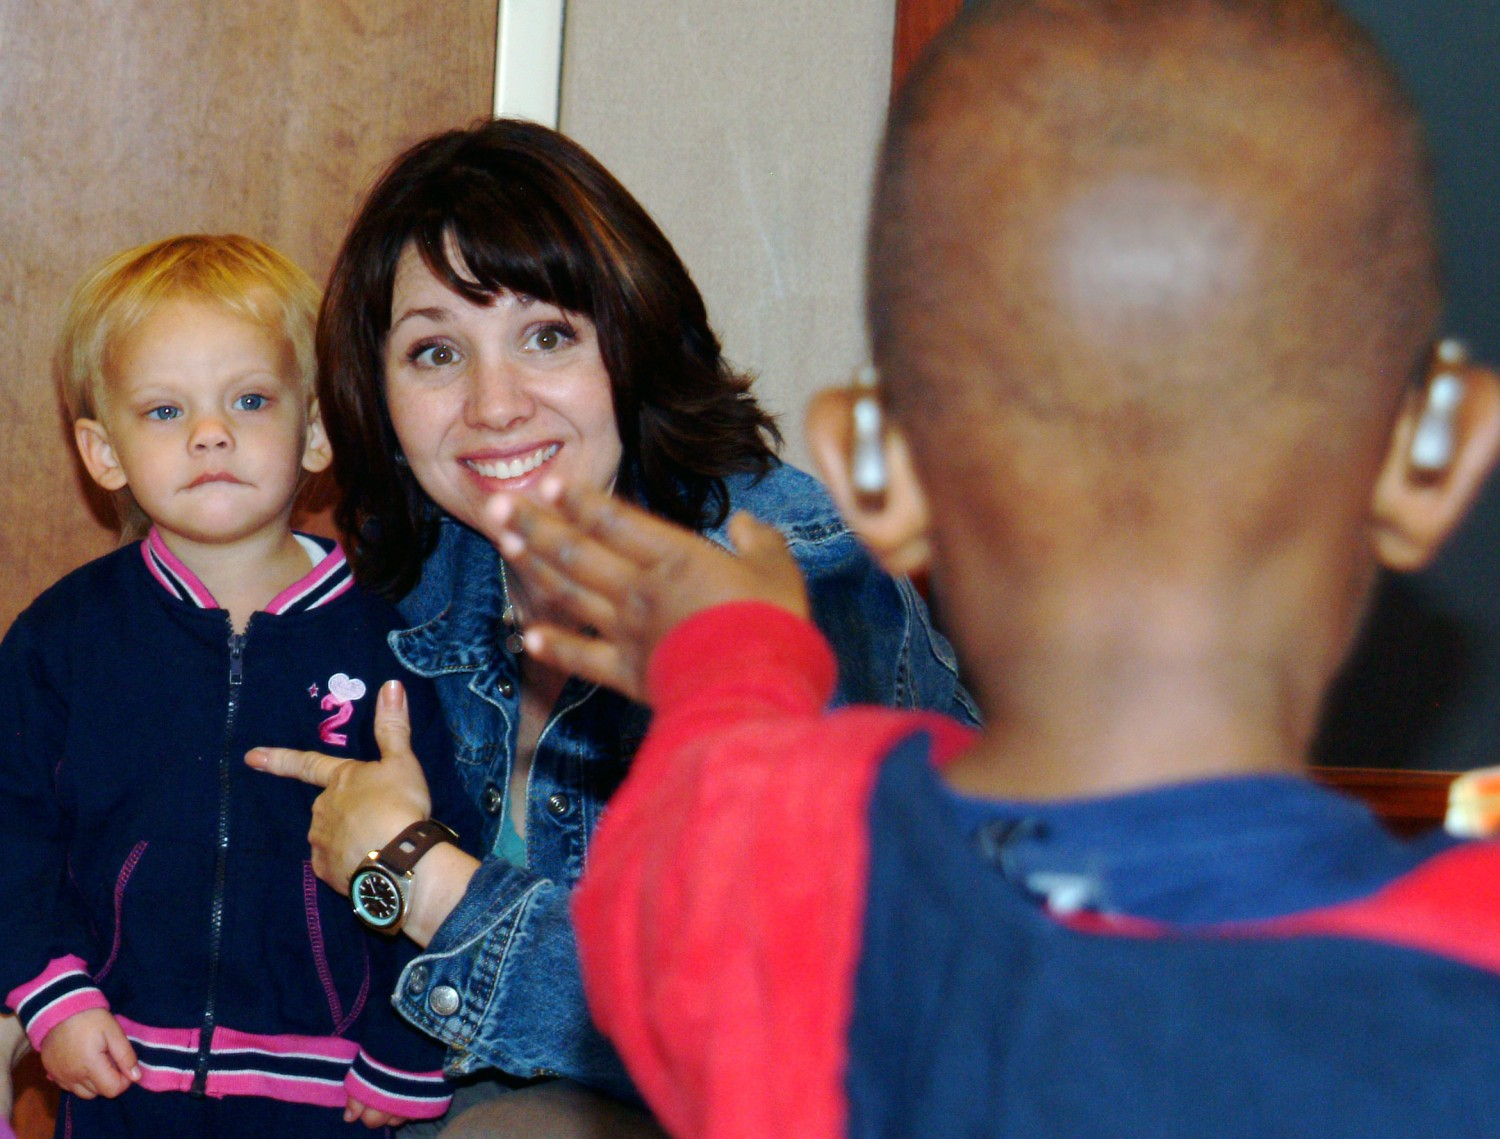 toddlers with hearing aids interact with their teacher at CID